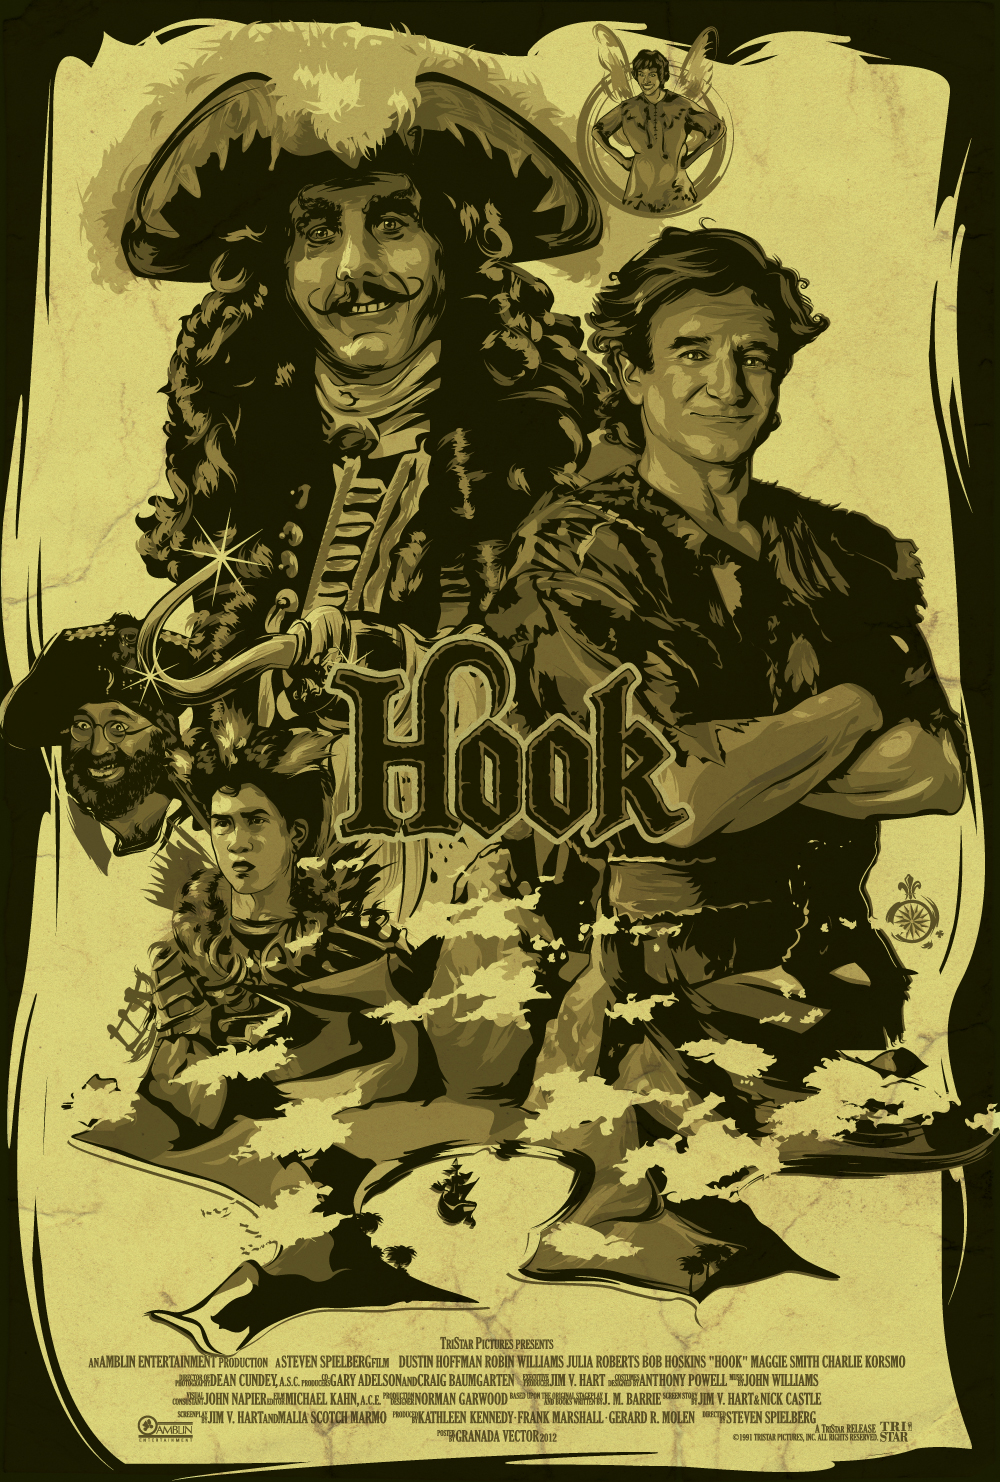 HOOK MOVIE POSTER by GranadaVector on DeviantArt